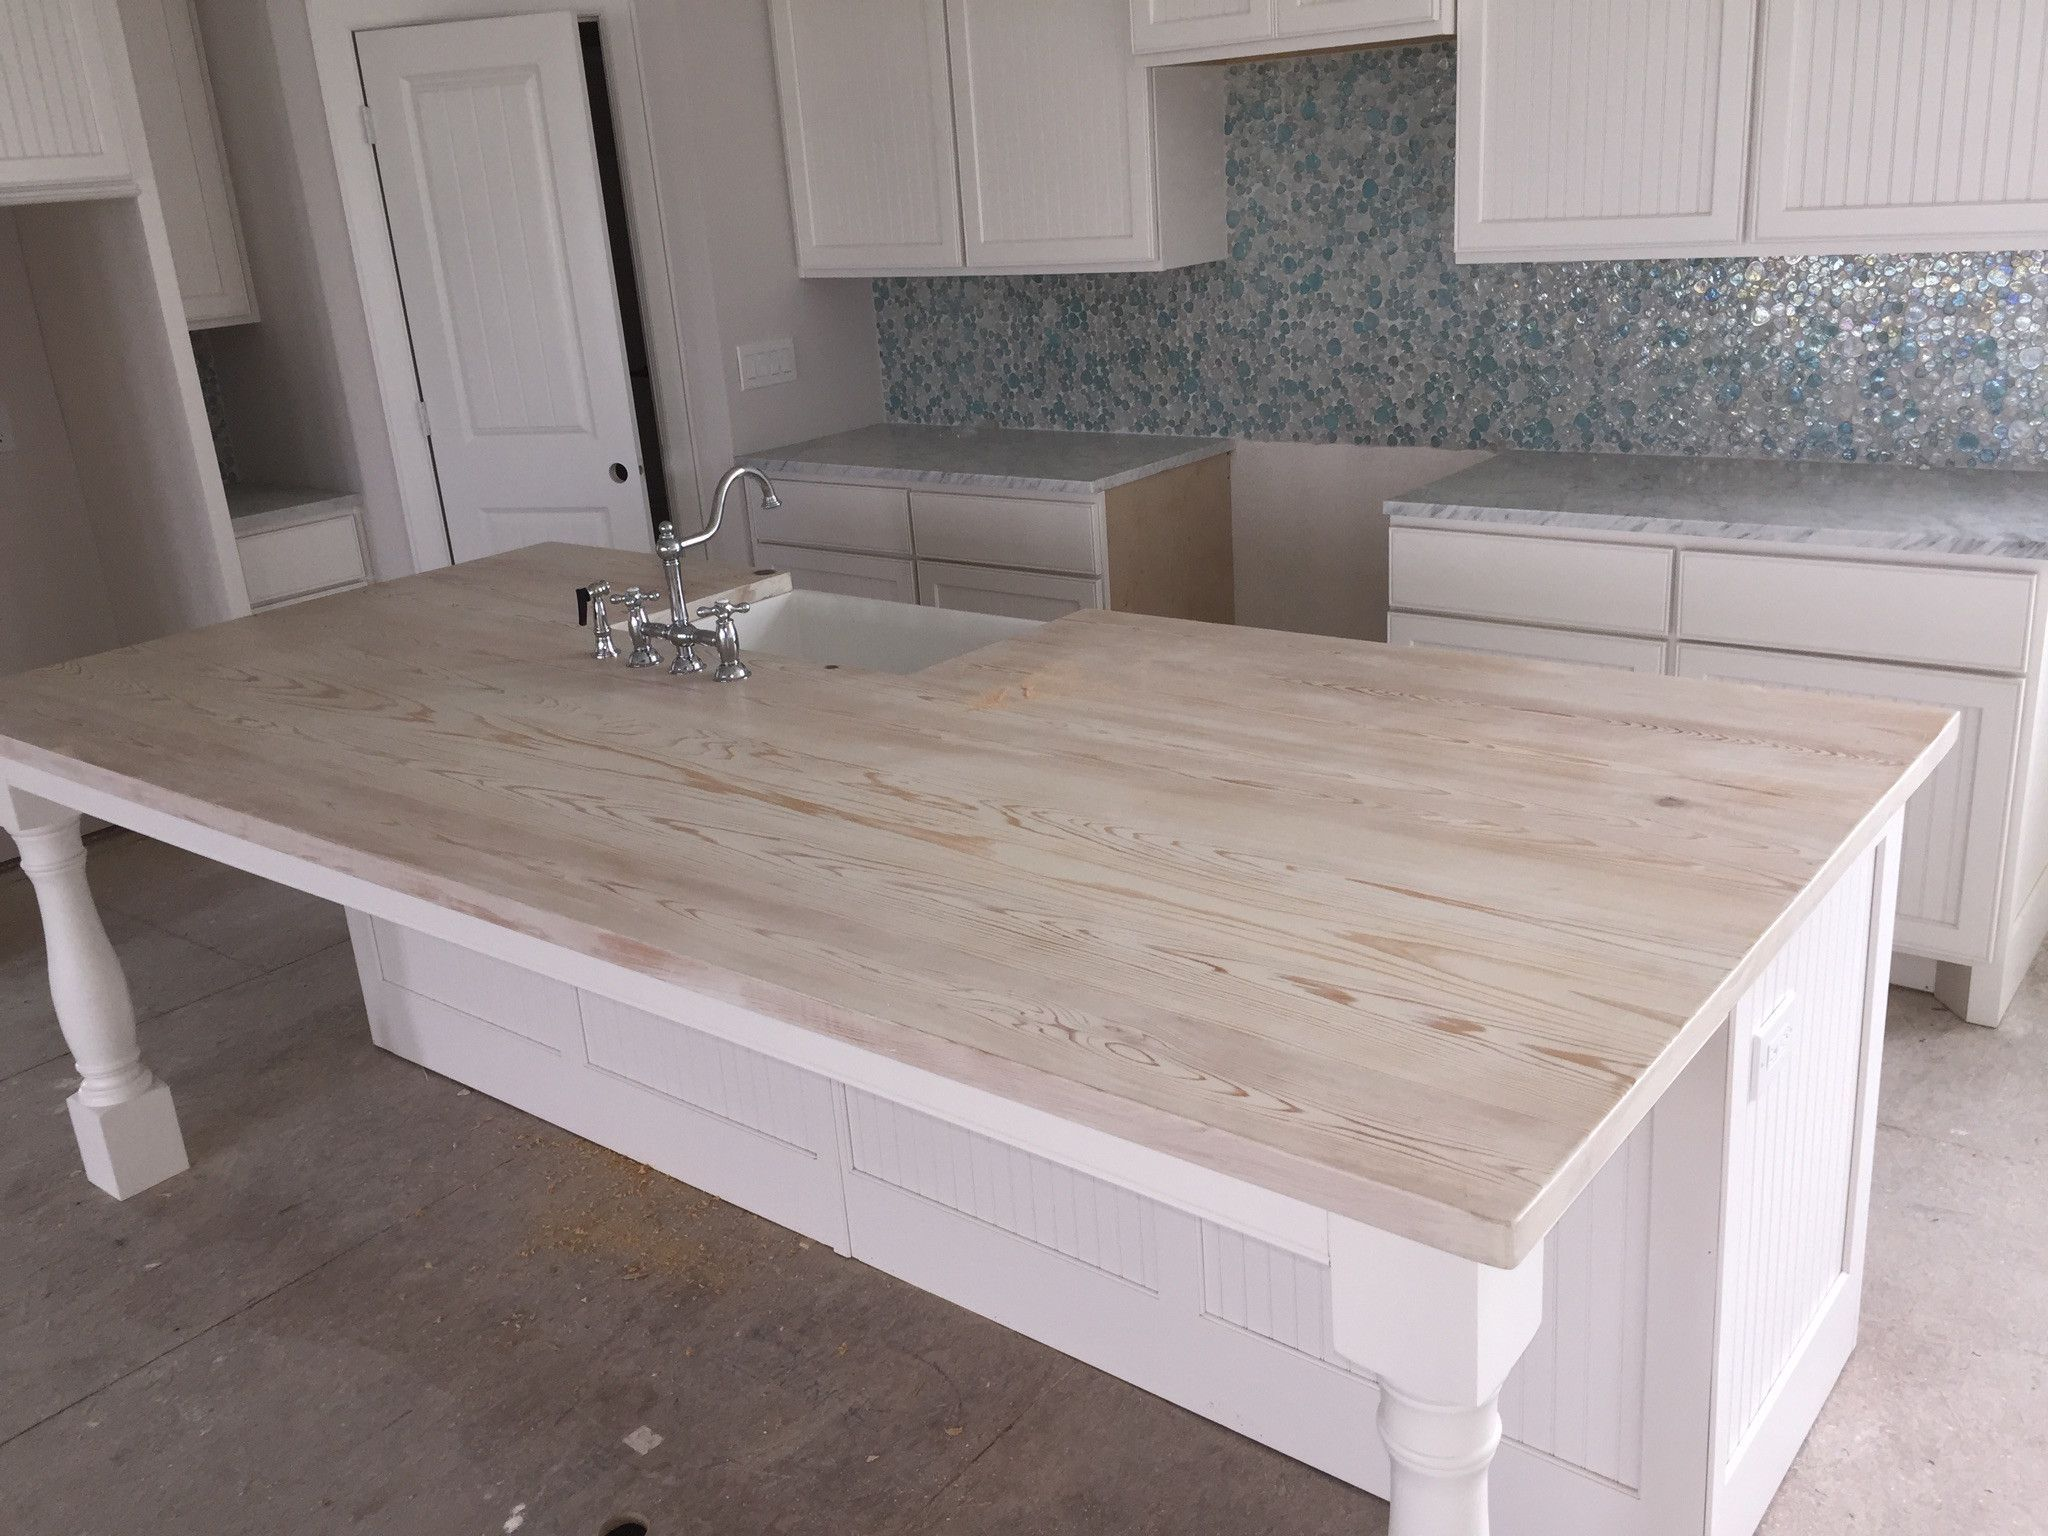 Kitchen Countertop Whitewash Google Search Wood Countertops